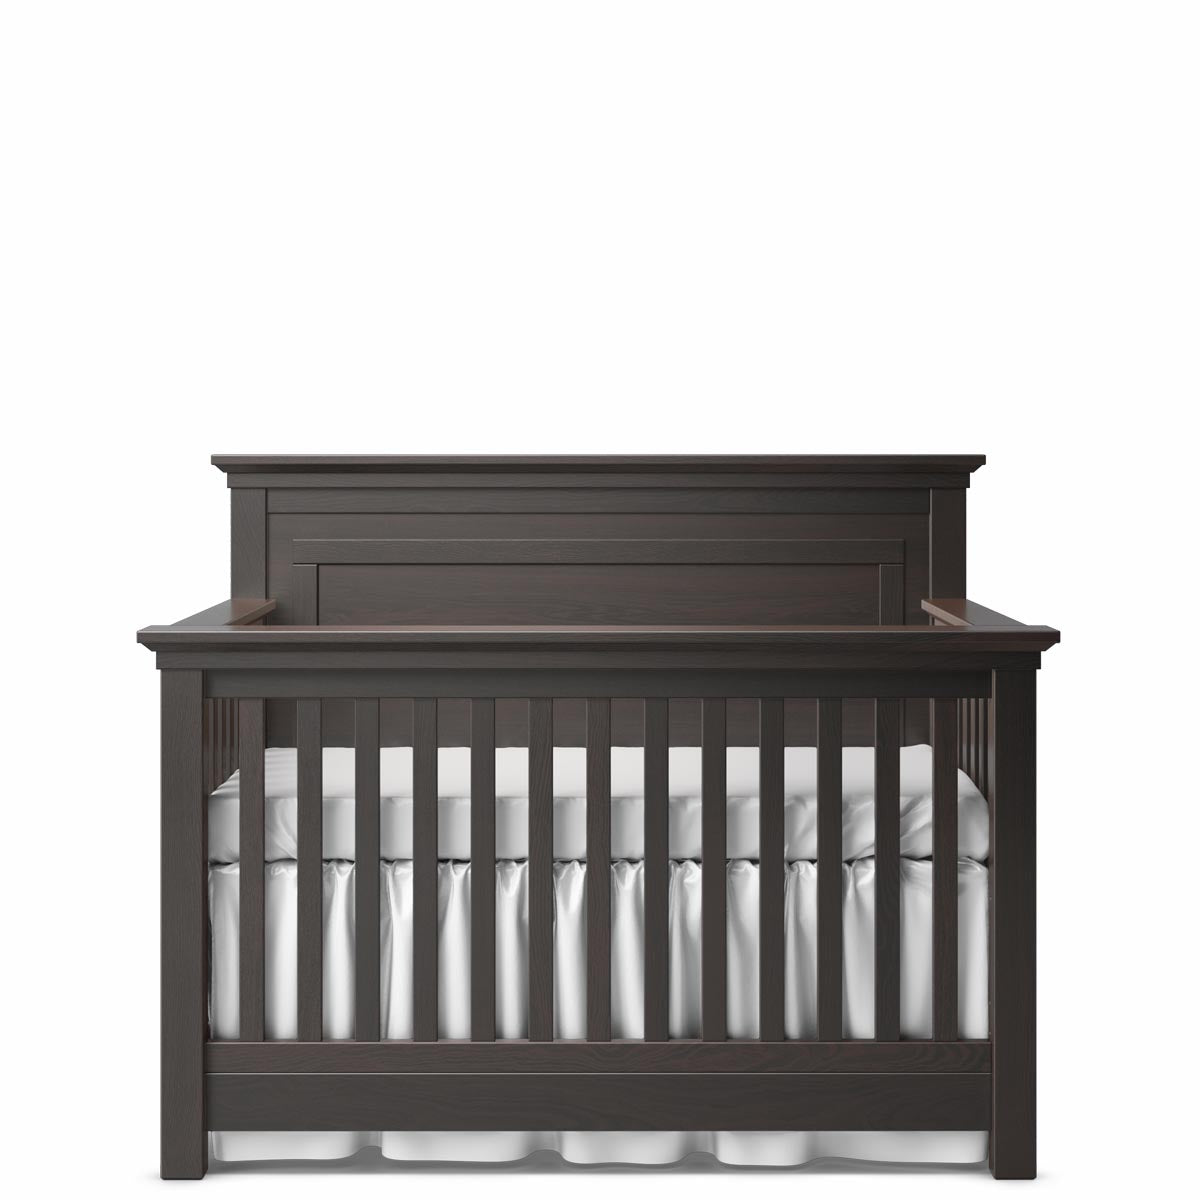 Romina Karisma Convertible Crib / Solid Panel